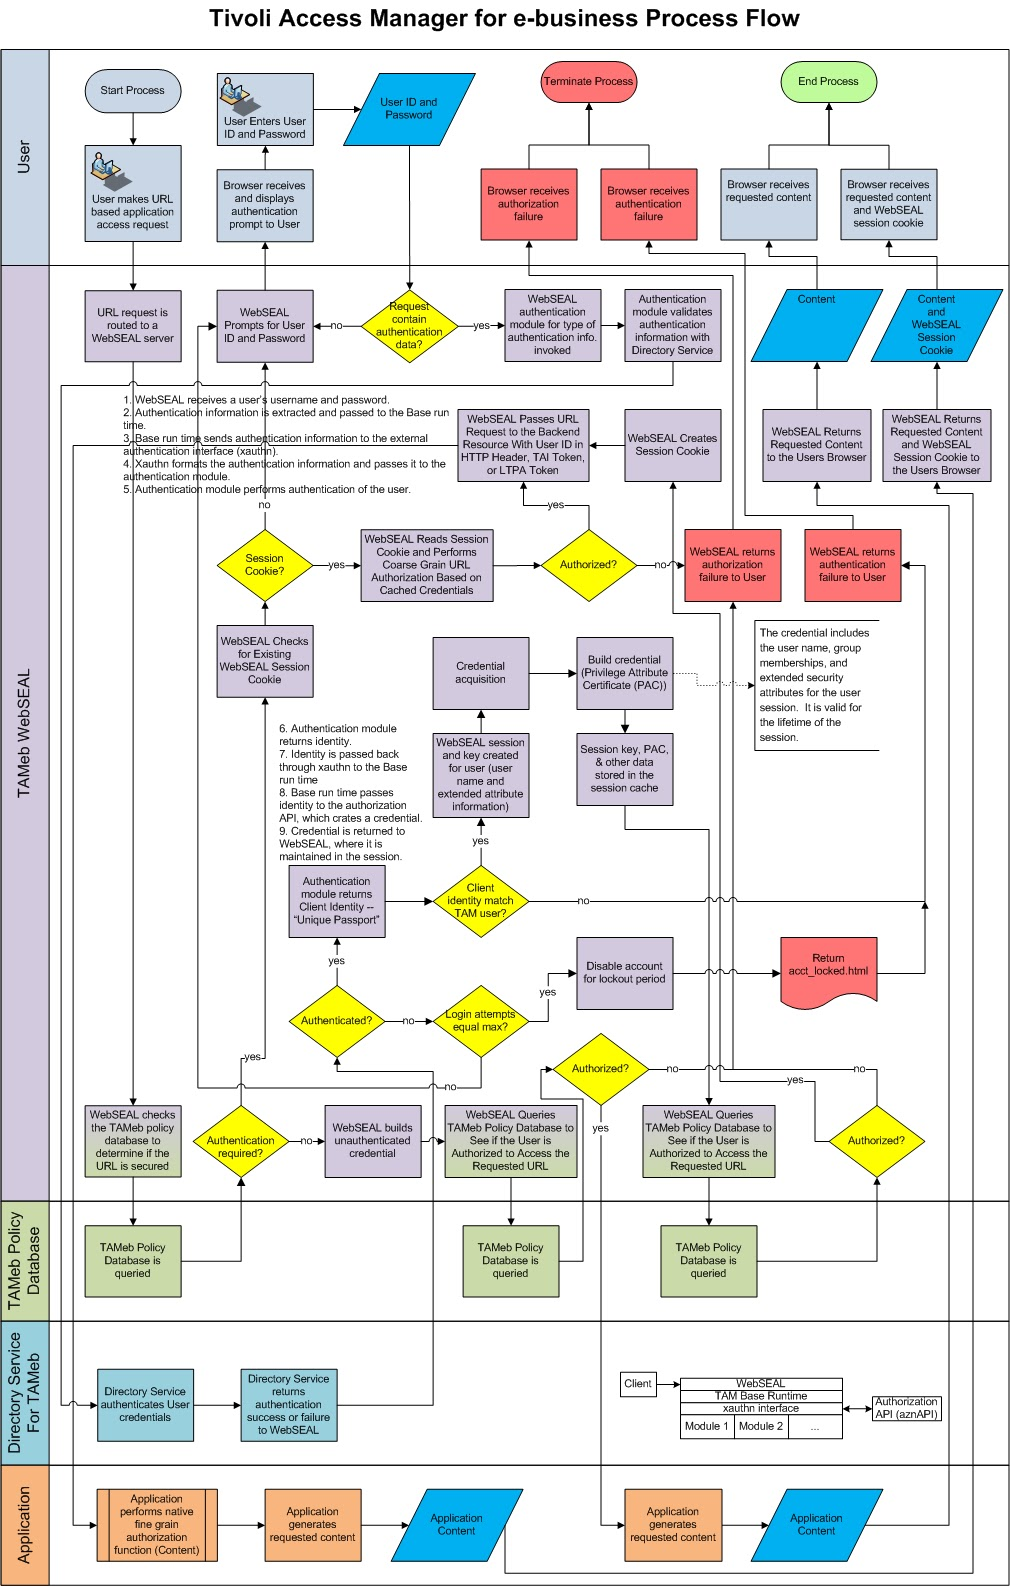 Encounters with get and post tameb process flow chart tameb process flow chart nvjuhfo Gallery